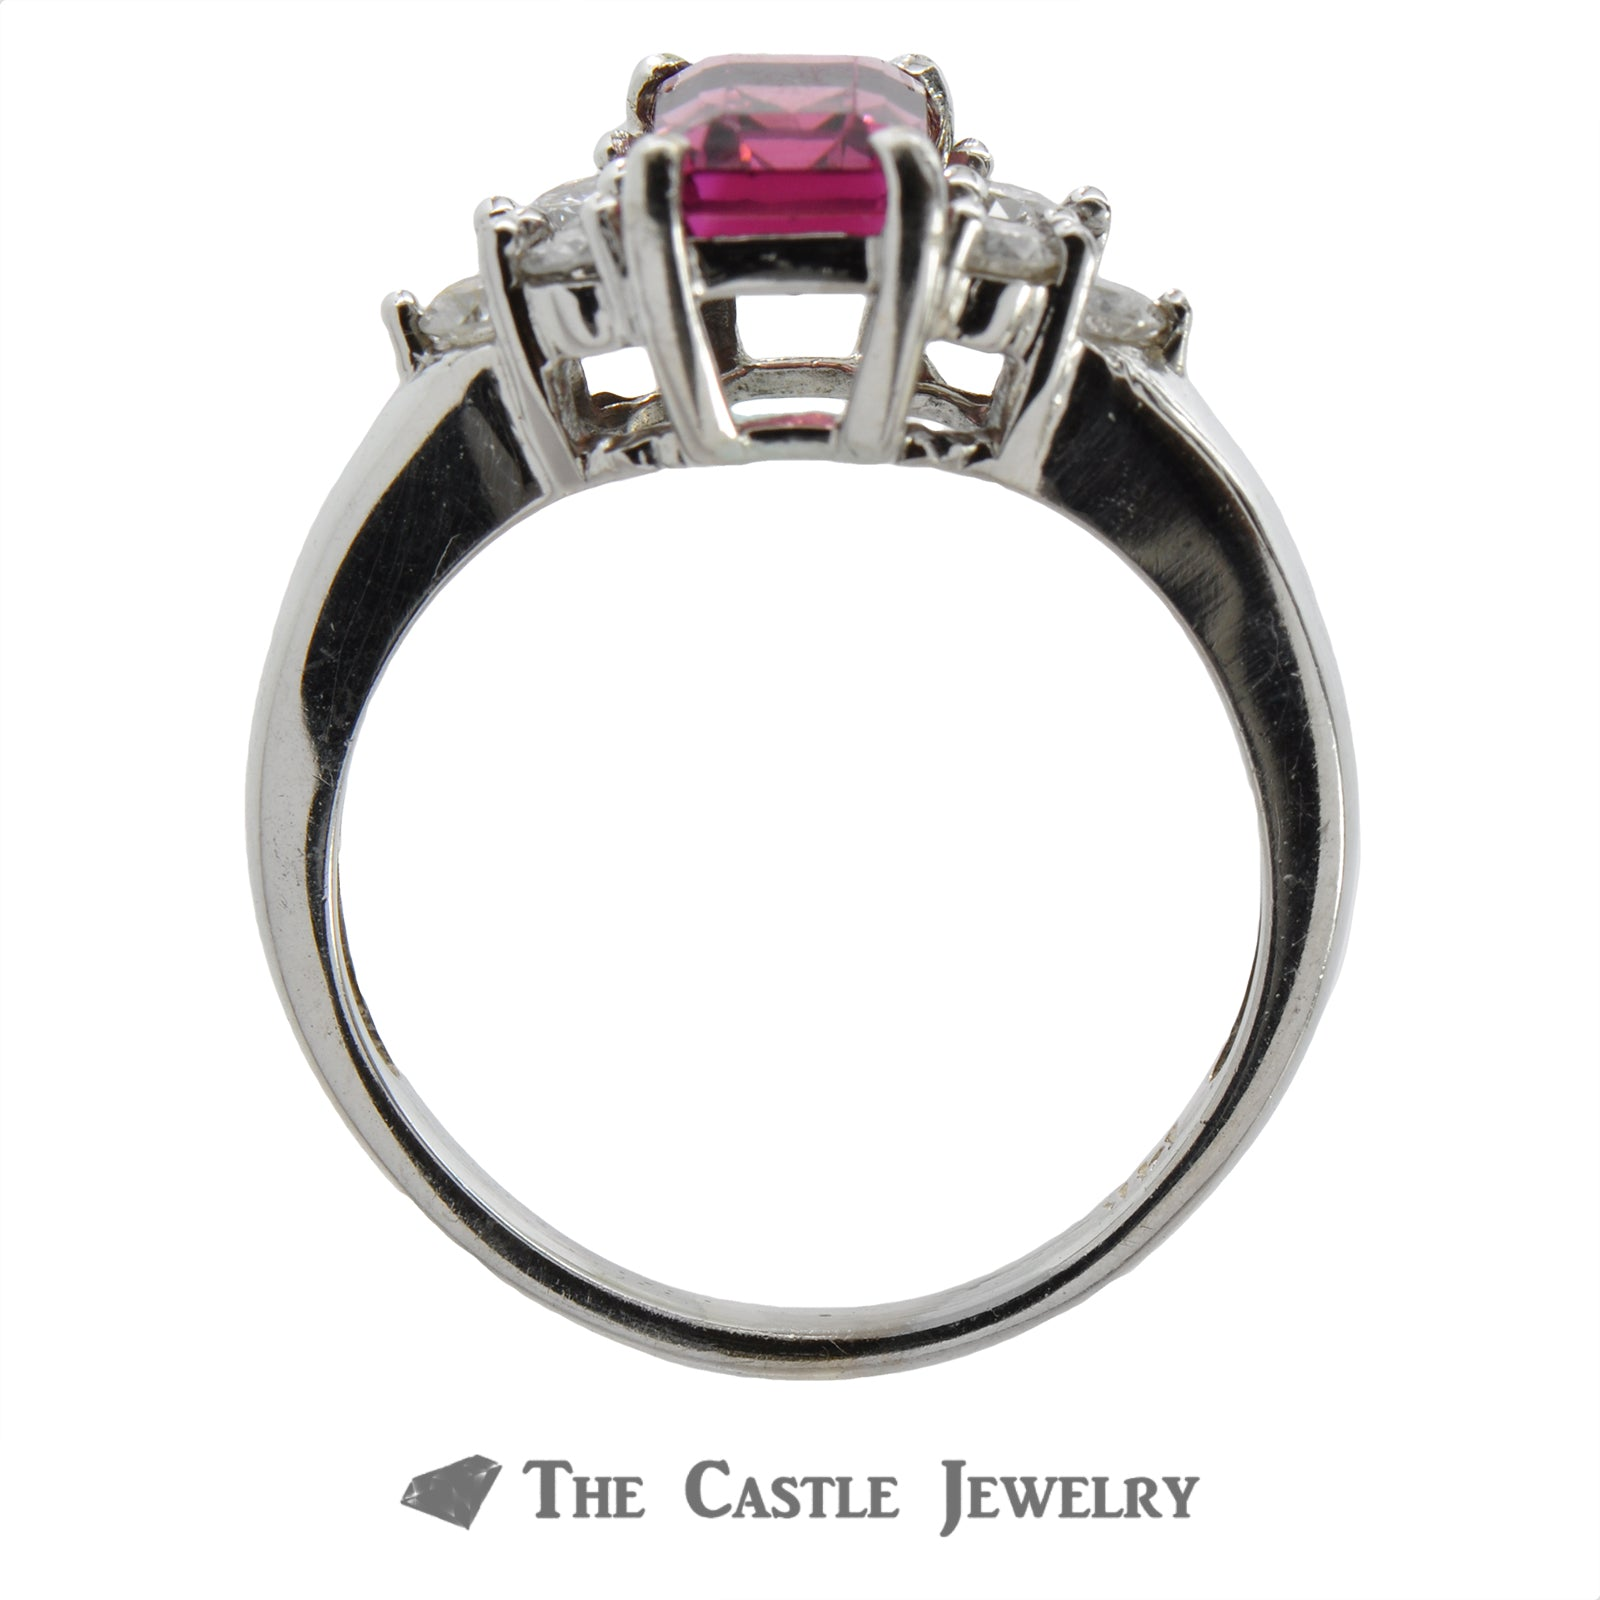 Emerald Cut Pink Rhodolite Garnet Ring with Diamond Accents-1